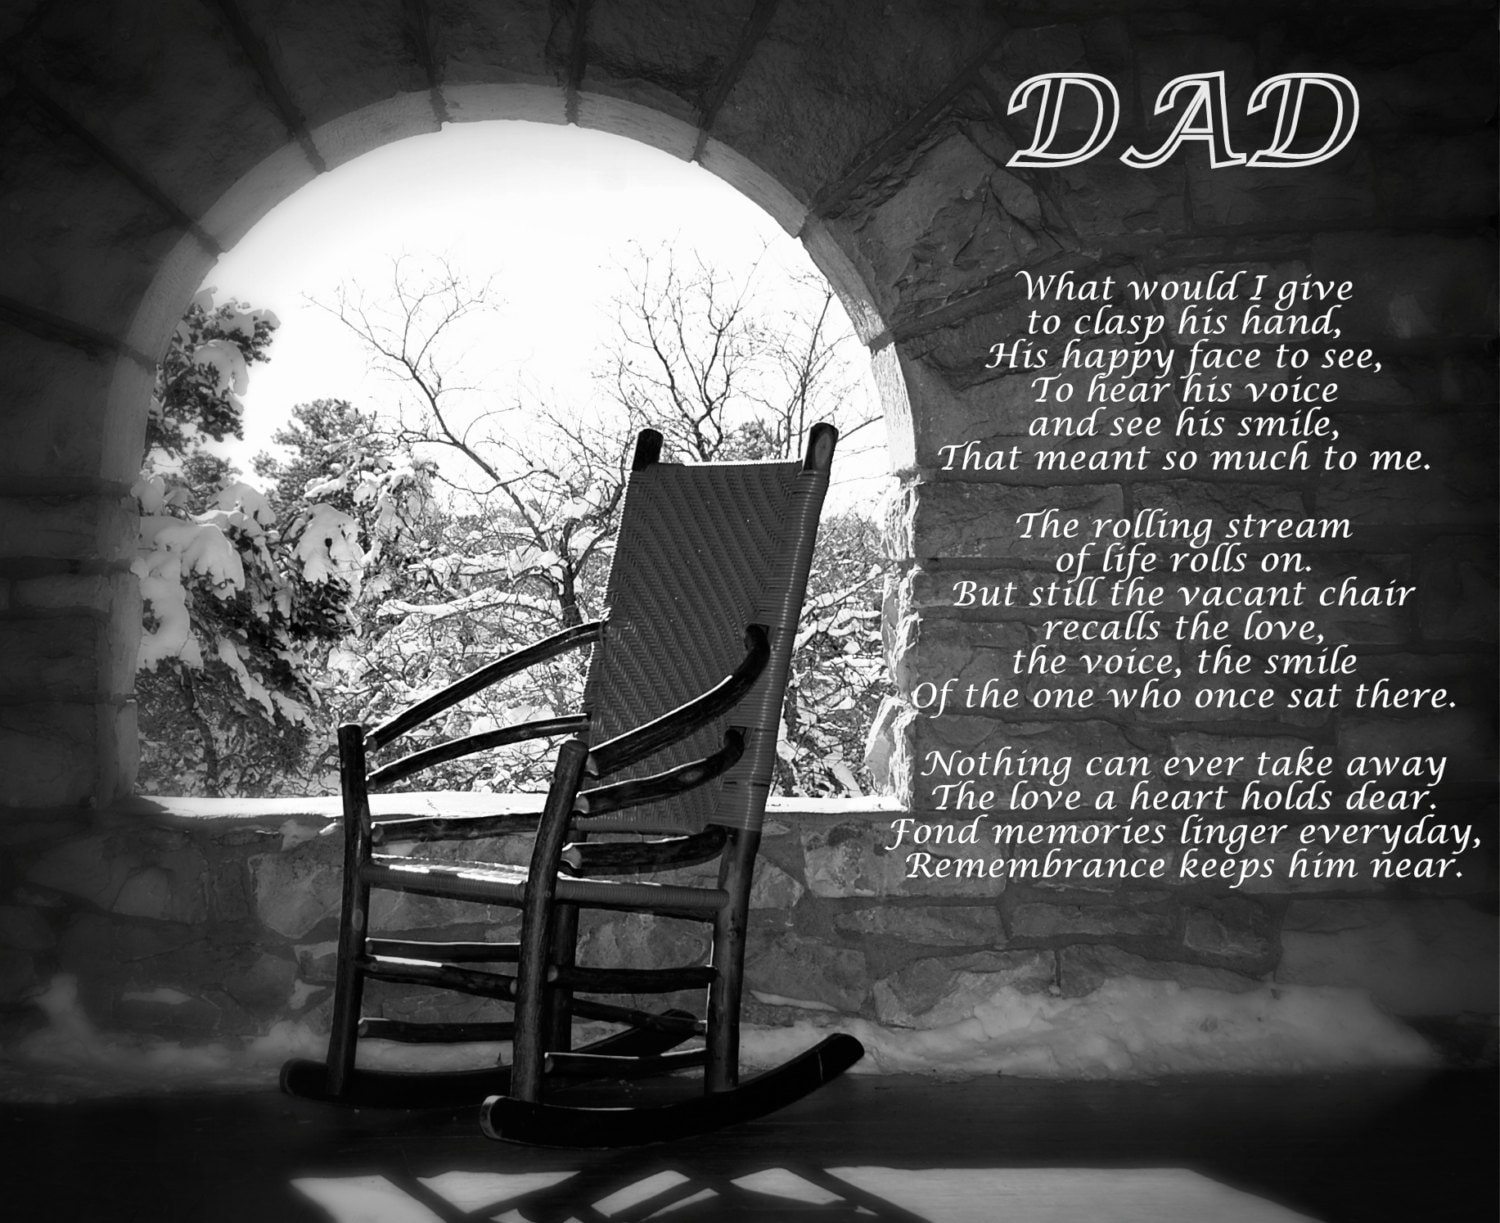 Missing Dad Poem Dad's Empty Chair Remembering Dad Poem